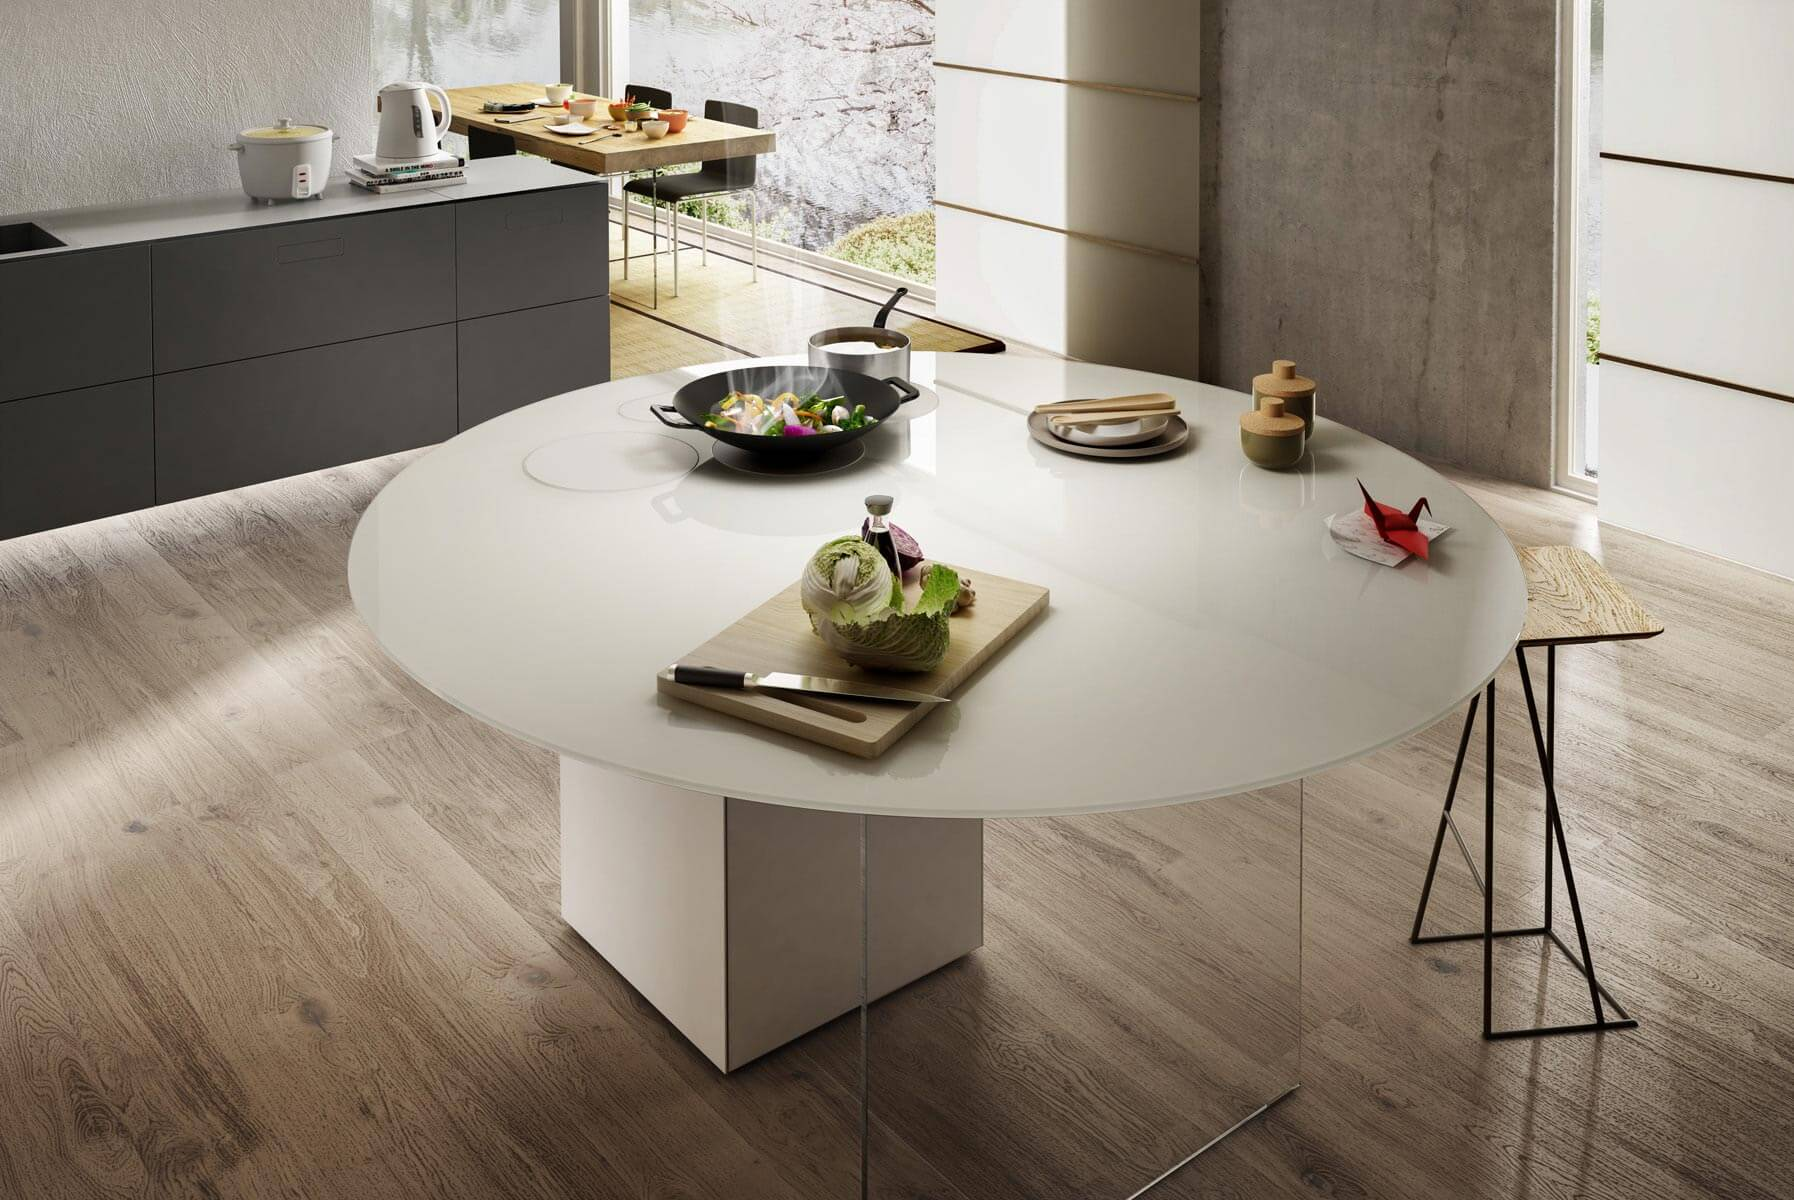 Air Kitchen a circular kitchen that celebrates conviviality  LAGO Design